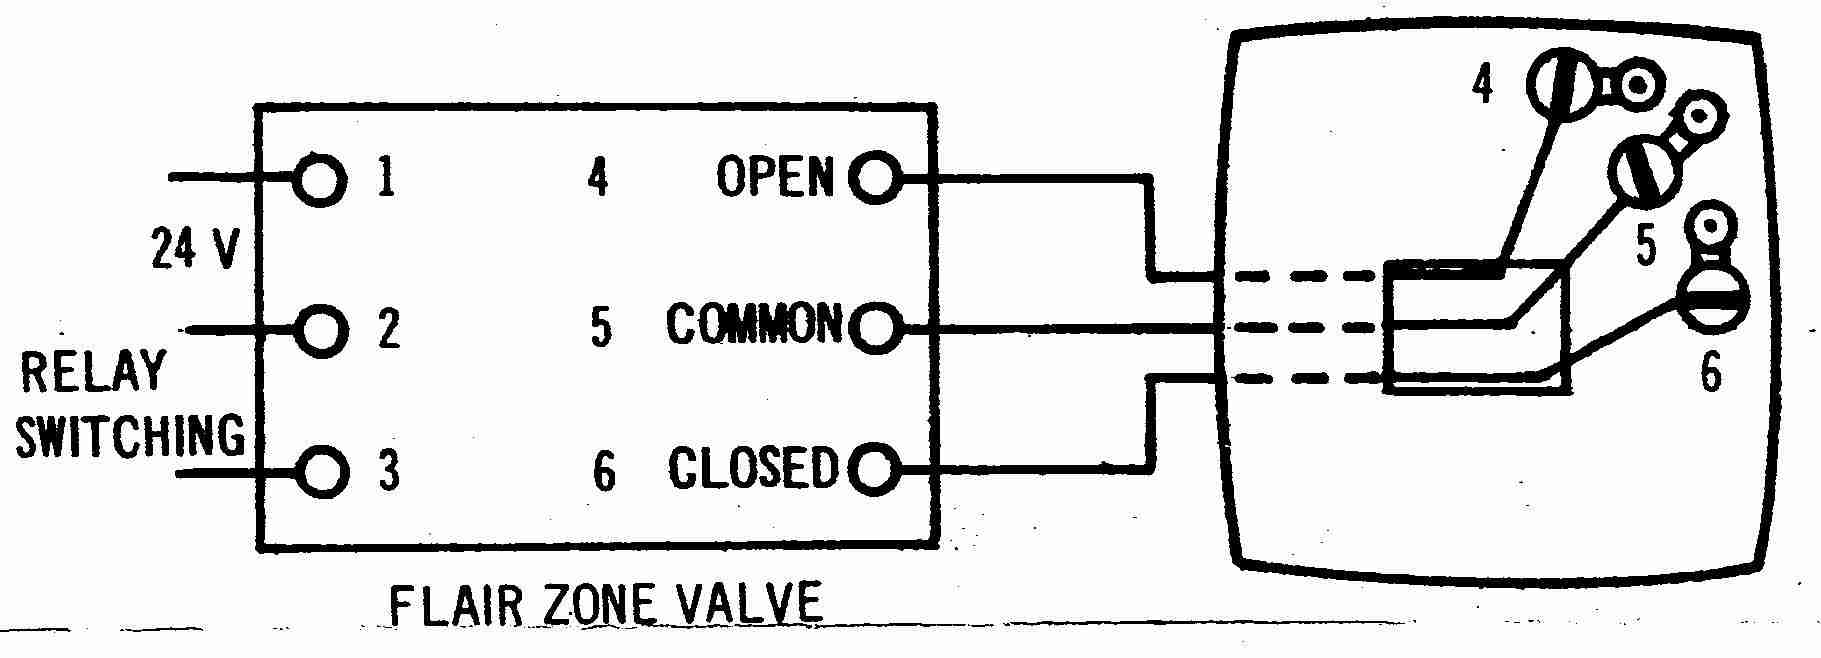 Flair3w_001_DJFc2 room thermostat wiring diagrams for hvac systems belimo thermostat wiring diagram at n-0.co